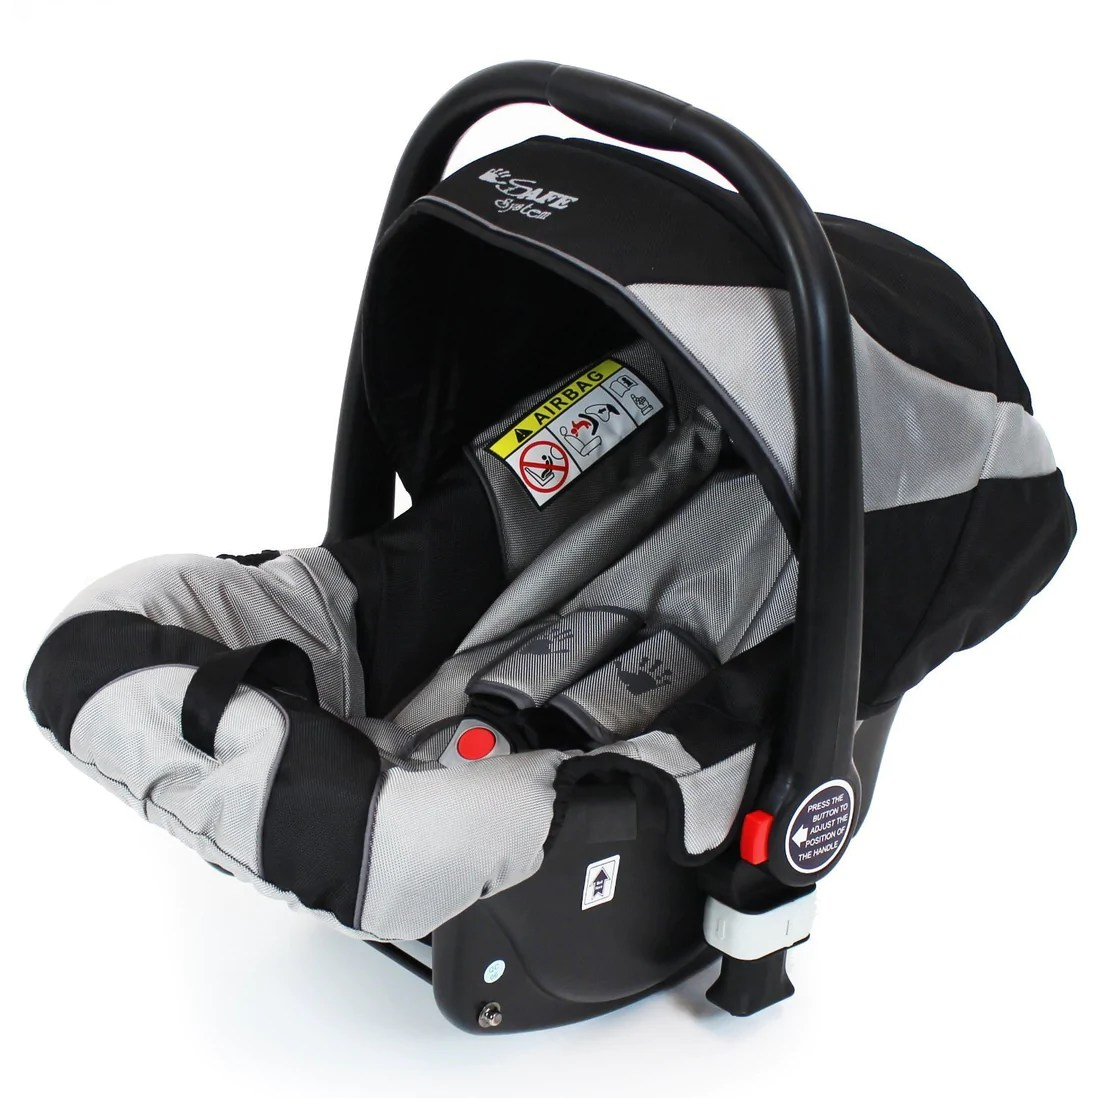 Infant Seat Vs Safety Seat Sale Now On Save Up To 50 Luxury Baby Prducts By Isafe